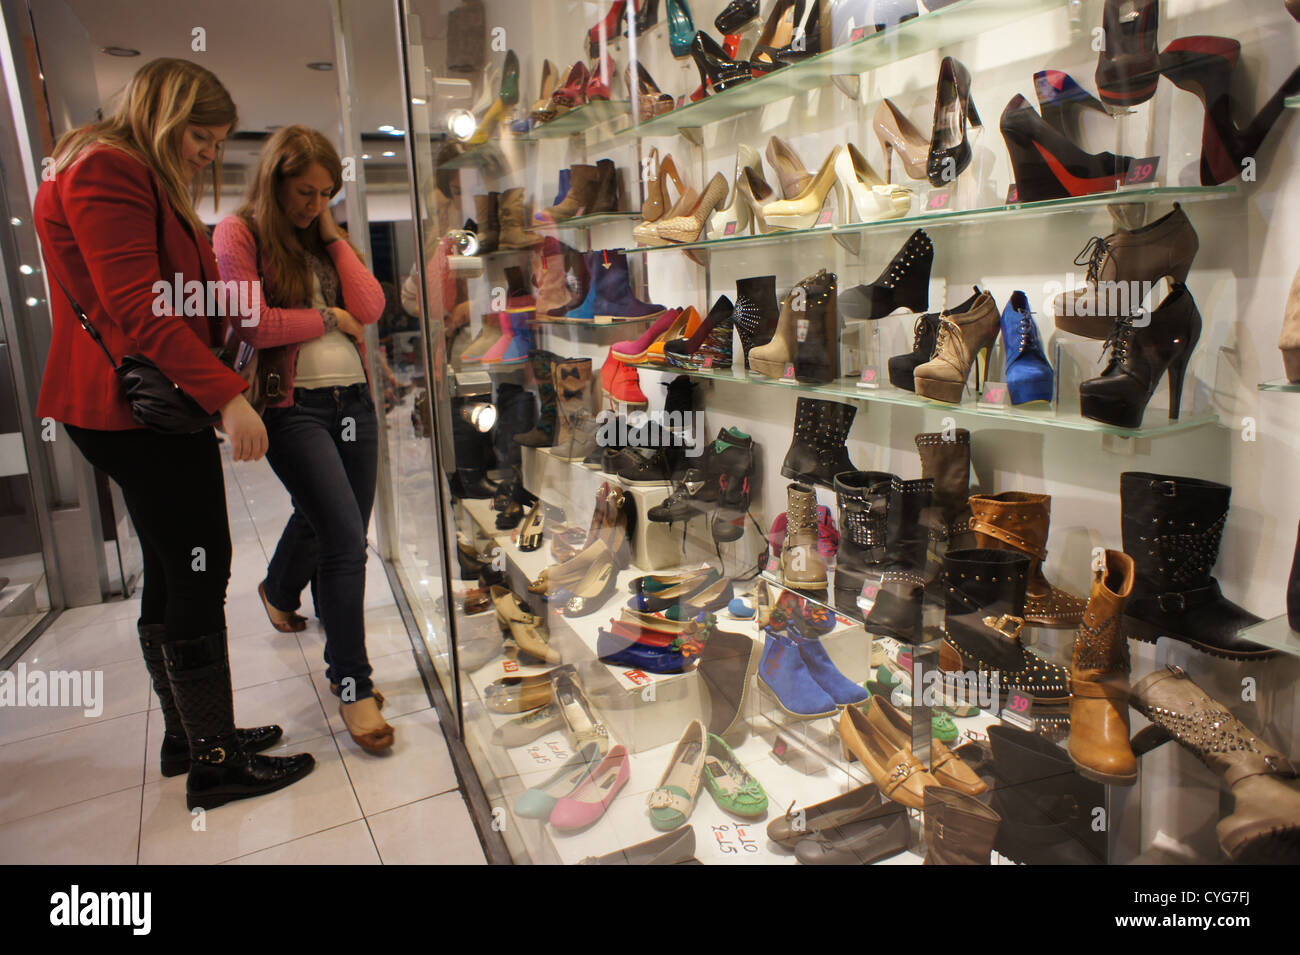 c50d70503d6 Women looking at shoes in shop window Stock Photo: 51373606 - Alamy